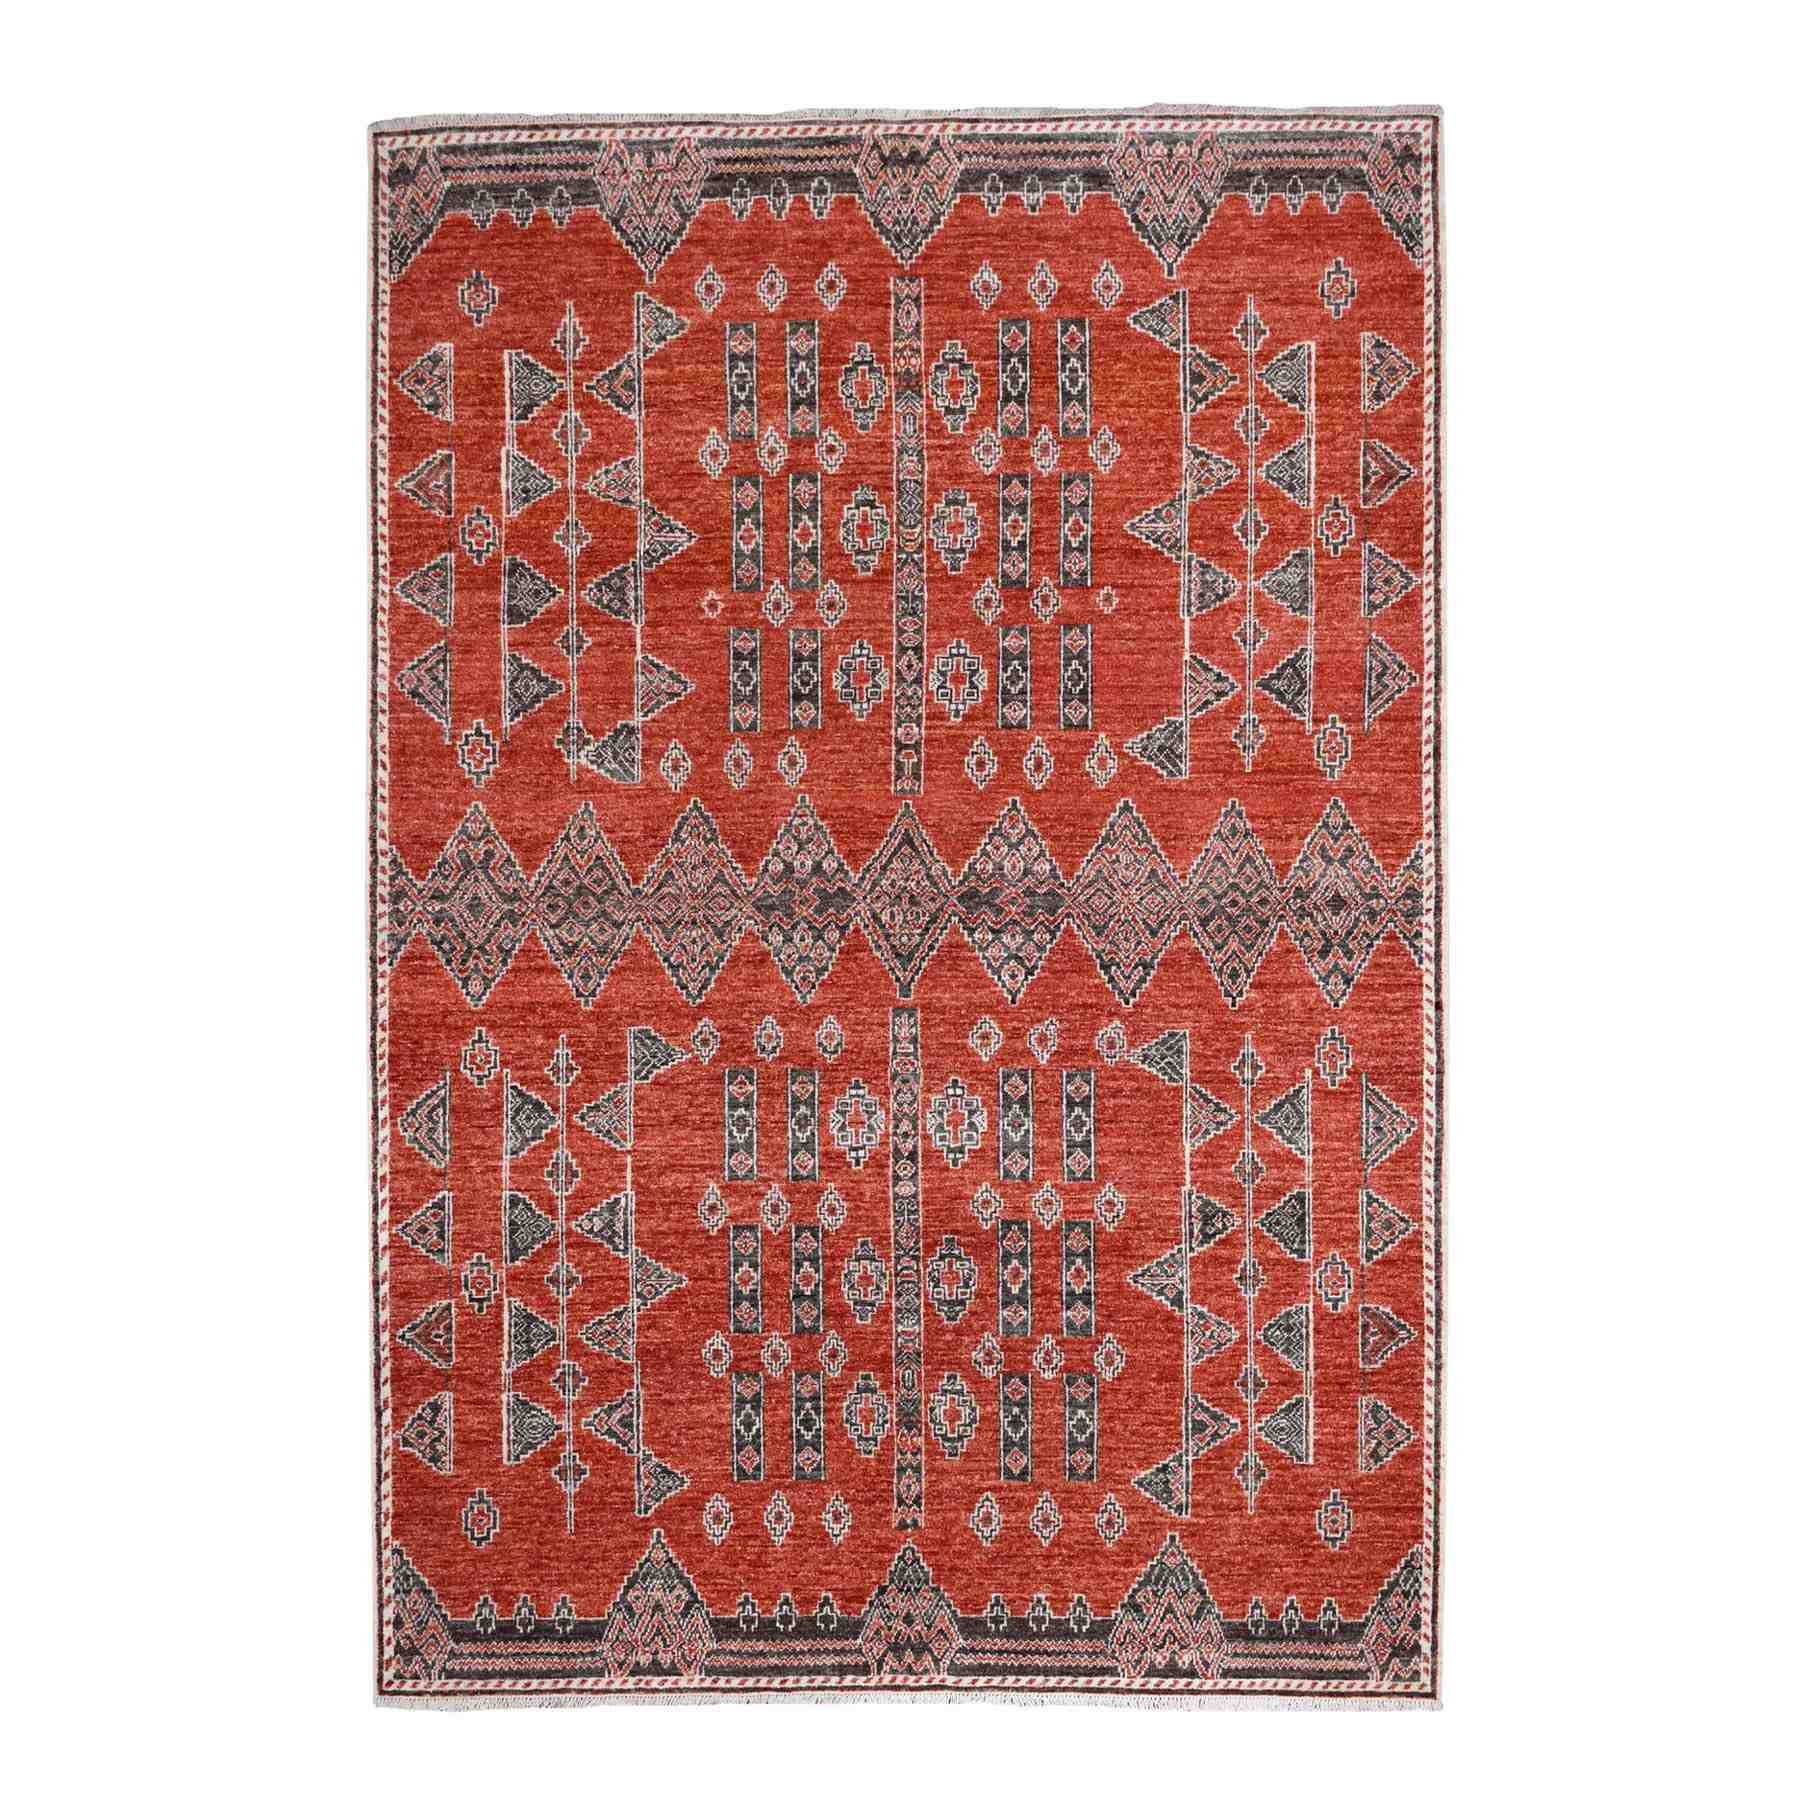 """6'1""""X8'7"""" Rust Red Natural Wool Peshawar Berber Motifs Hand Knotted Oriental Rug moaed997"""